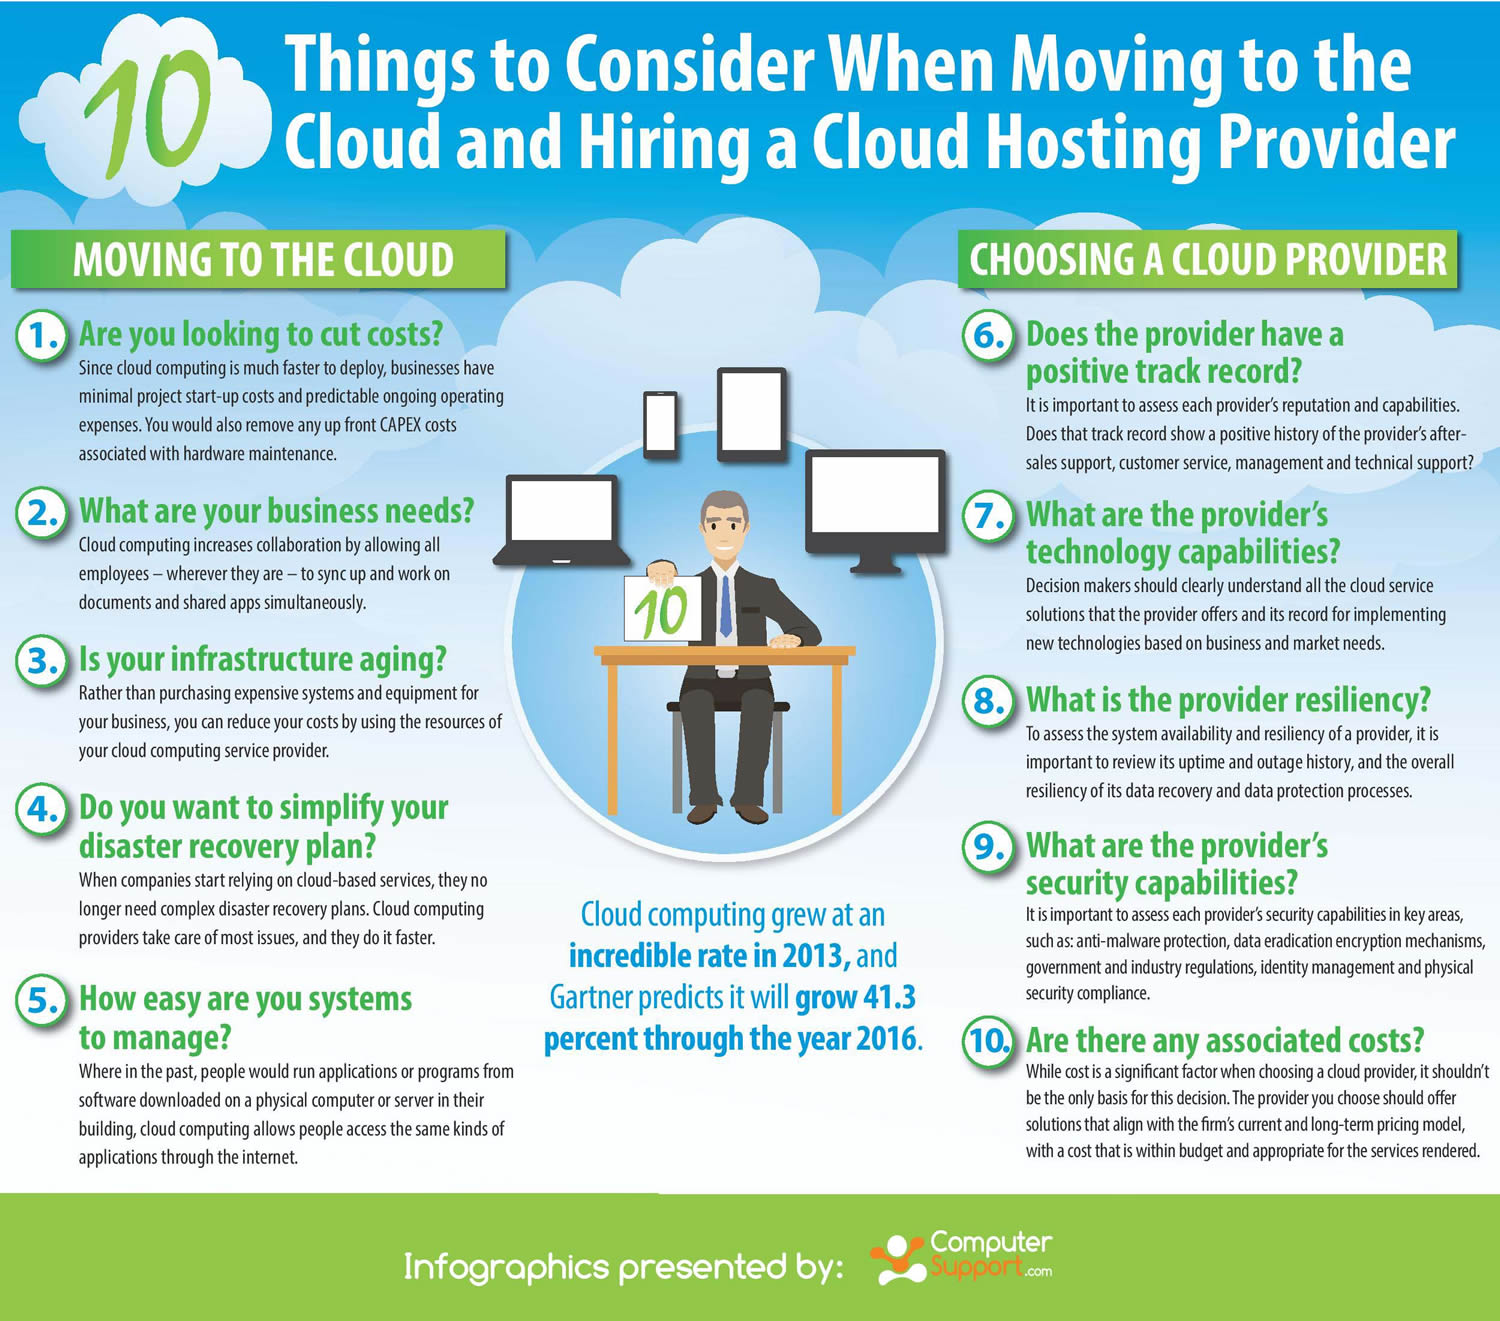 Top 10 Things To Consider When Moving To The Cloud And